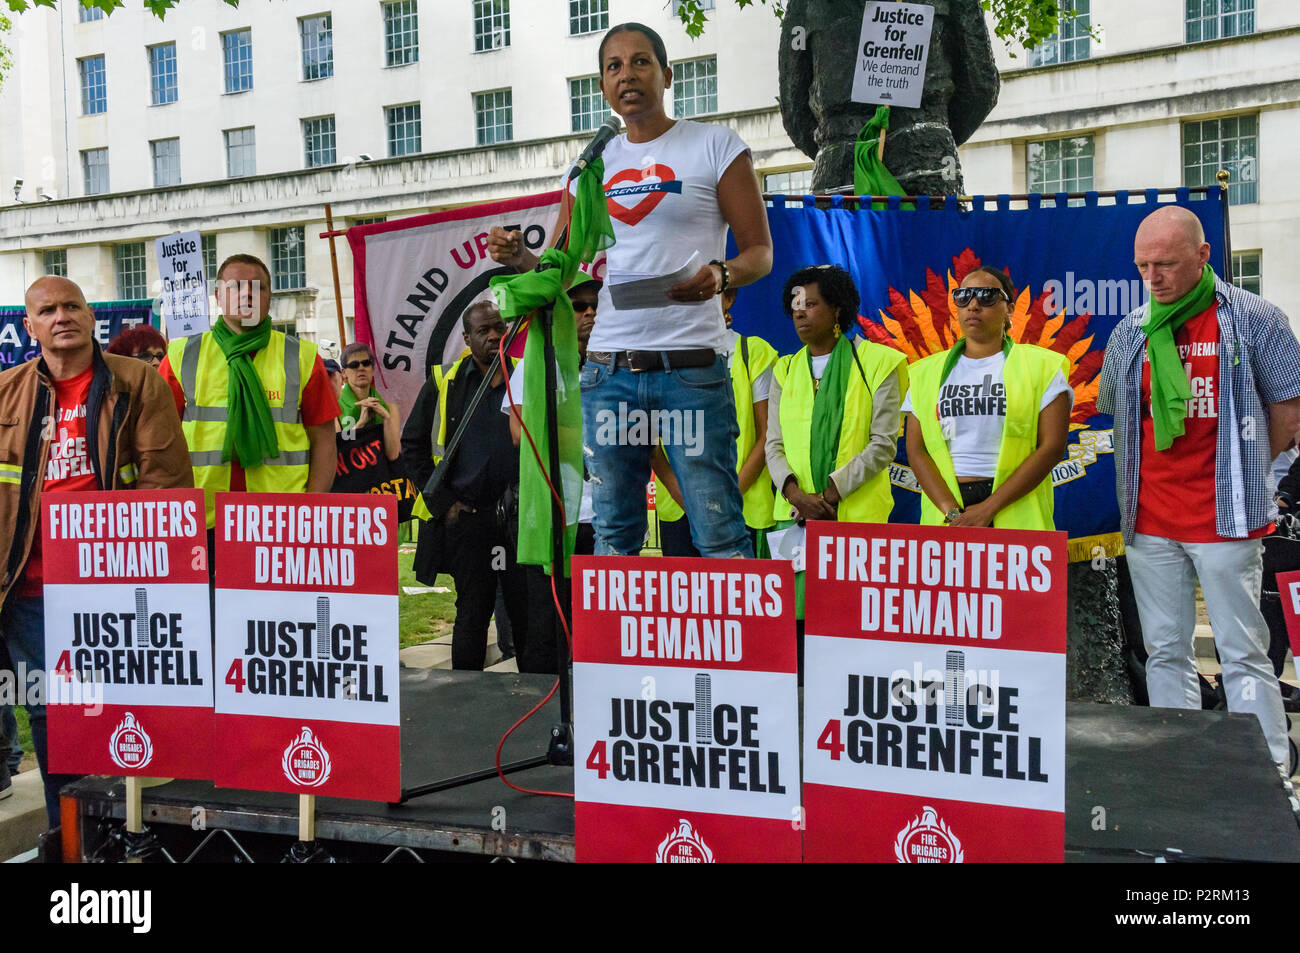 London, UK. 16th June 2018. London Firefighter Lucy Masoud, one of the first to arrive at Grenfell Tower, speaks to the large crowd at Downing St  in solidarity with the 72 killed and the survivors of the Grenfell fire a year ago at a protest organised by Justice4Grenfell and the FBU (Fire Brigades Union.) After some speeches they marched to the Home Office for a brief protest before returning to Downing St for more speeches. Speakers complained of the many promises made by Theresa May which have been broken, despite her promise all survivors would be rehoused in 3 weeks, a year later 50% of s - Stock Image